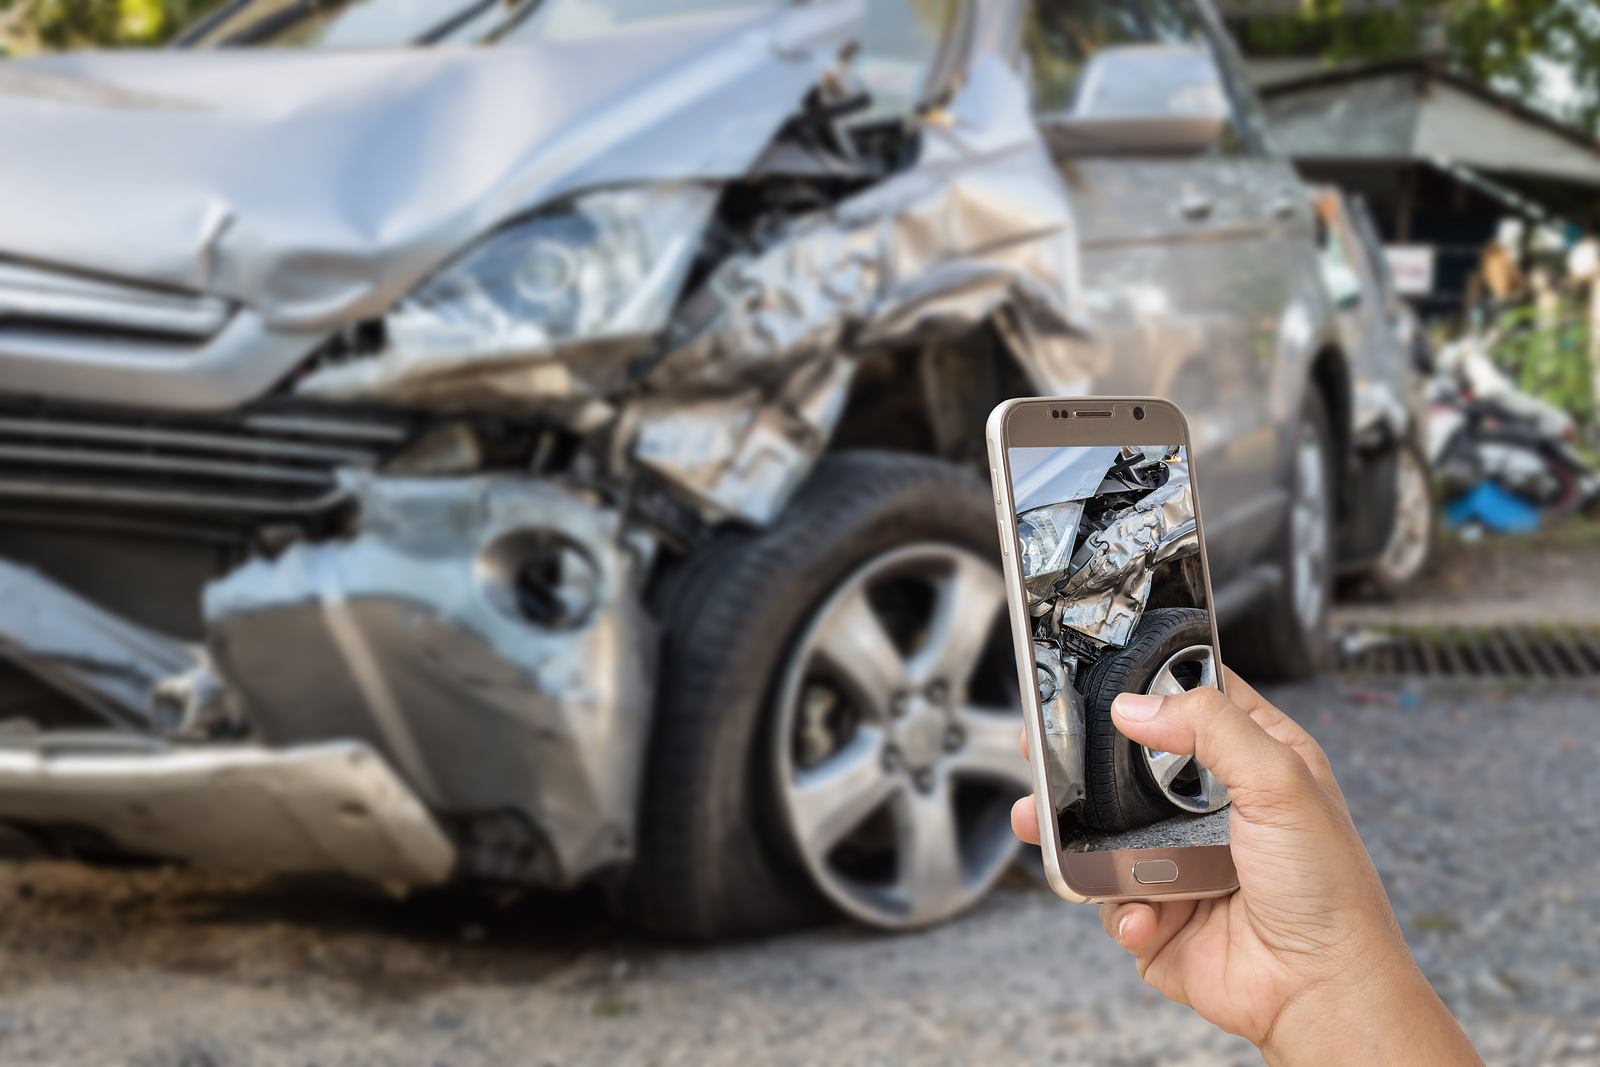 Car Insurance Claim Denied? (Here's What You Need To Do)